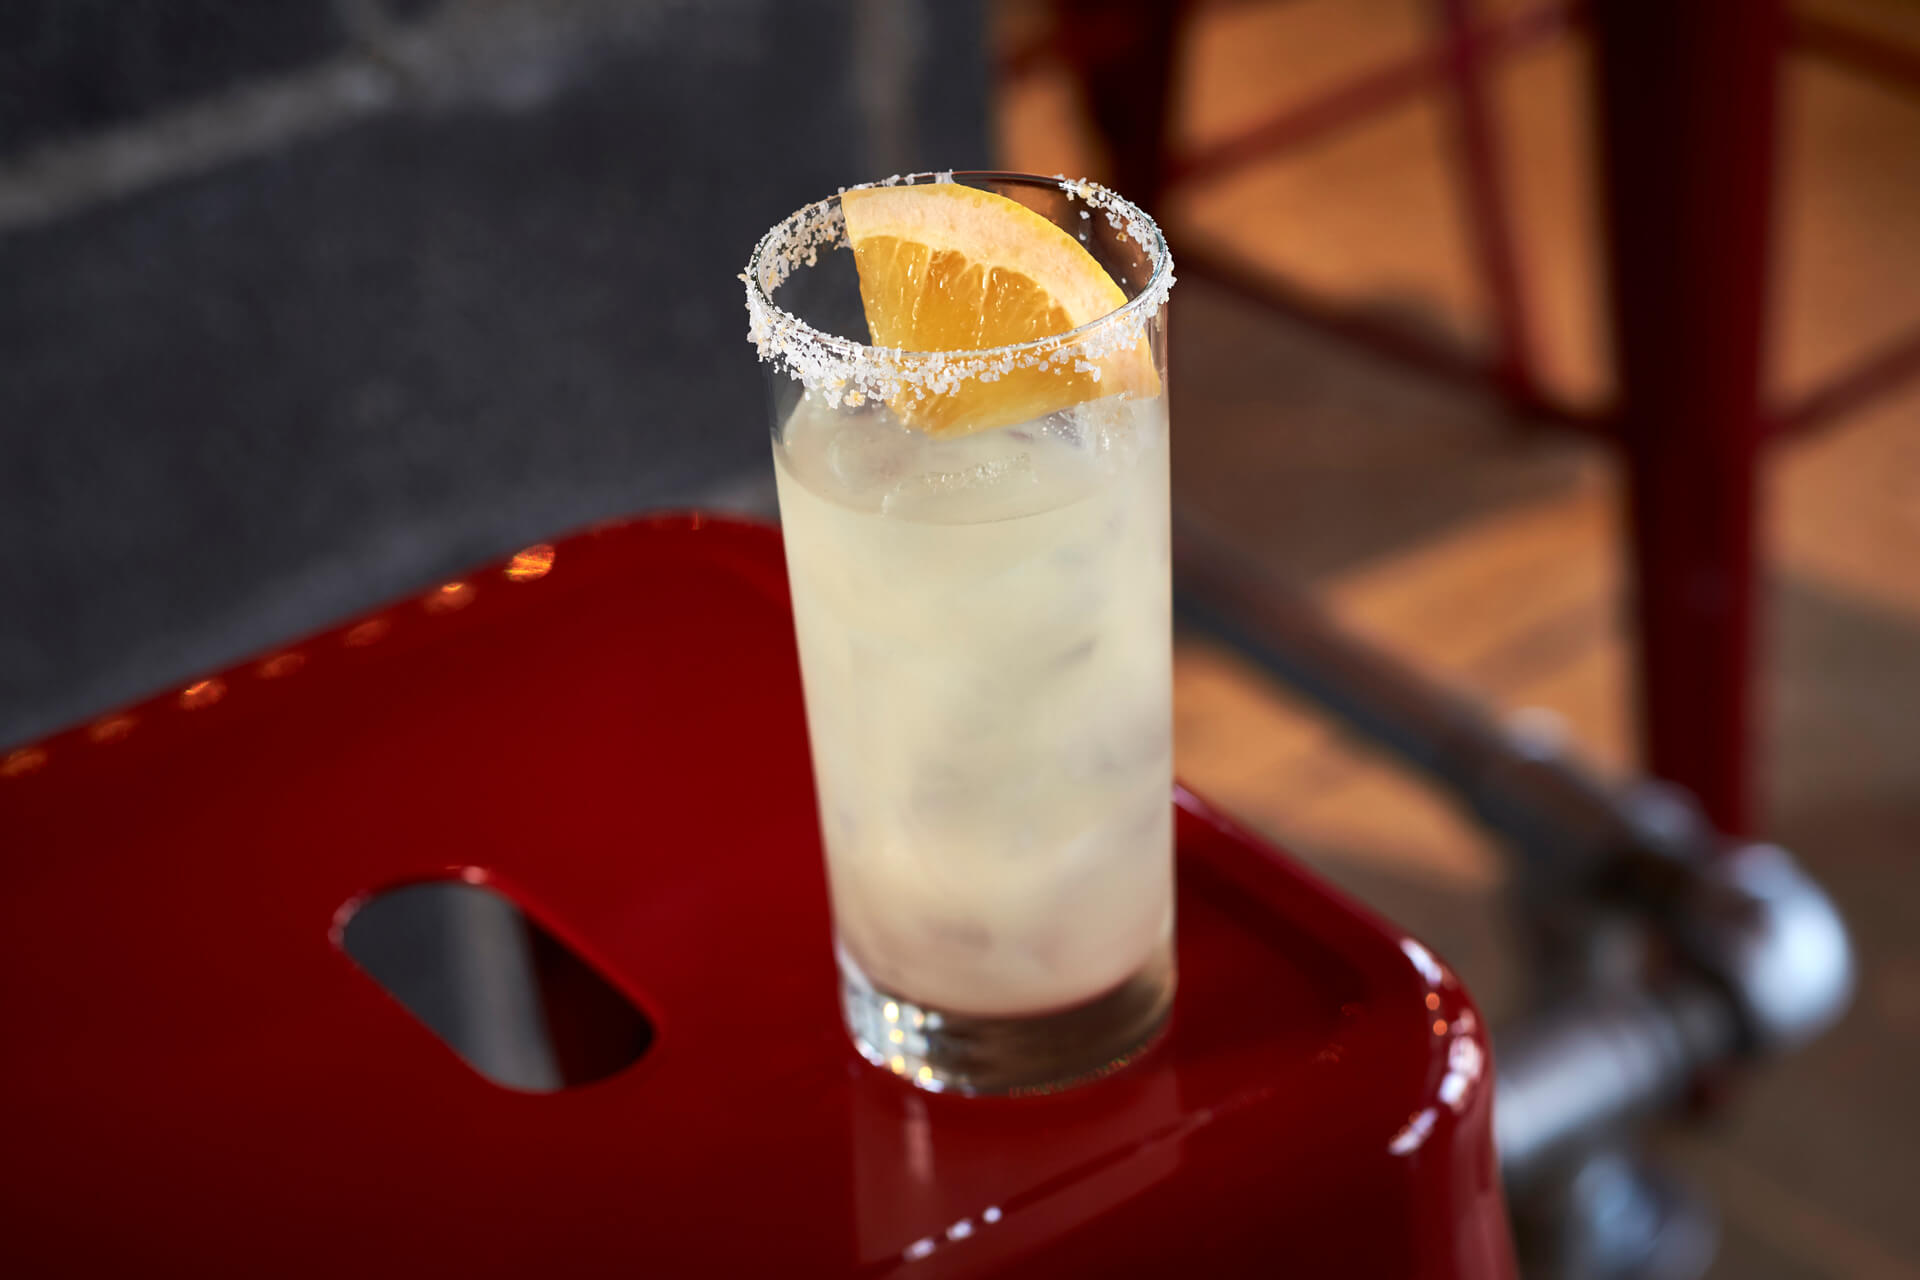 Flama Blanca Paloma at Taco Bamba in Vienna, VA - Cinco de Mayo 2017 Paloma cocktail recipes